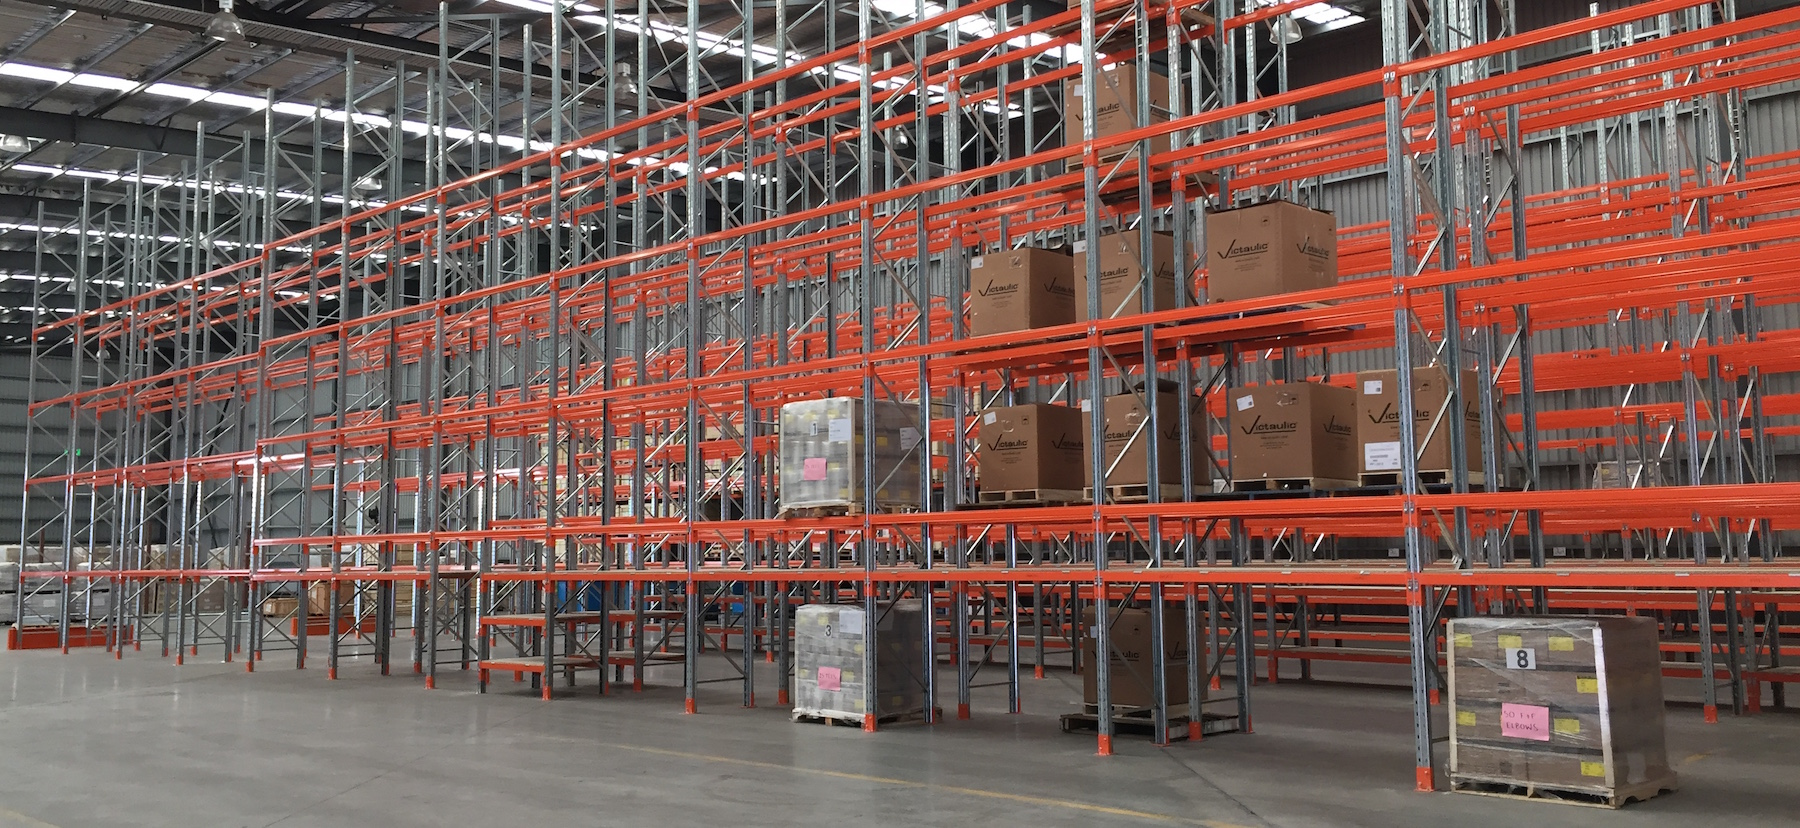 Improving Pallet Racking Safety Safer Storage Systems